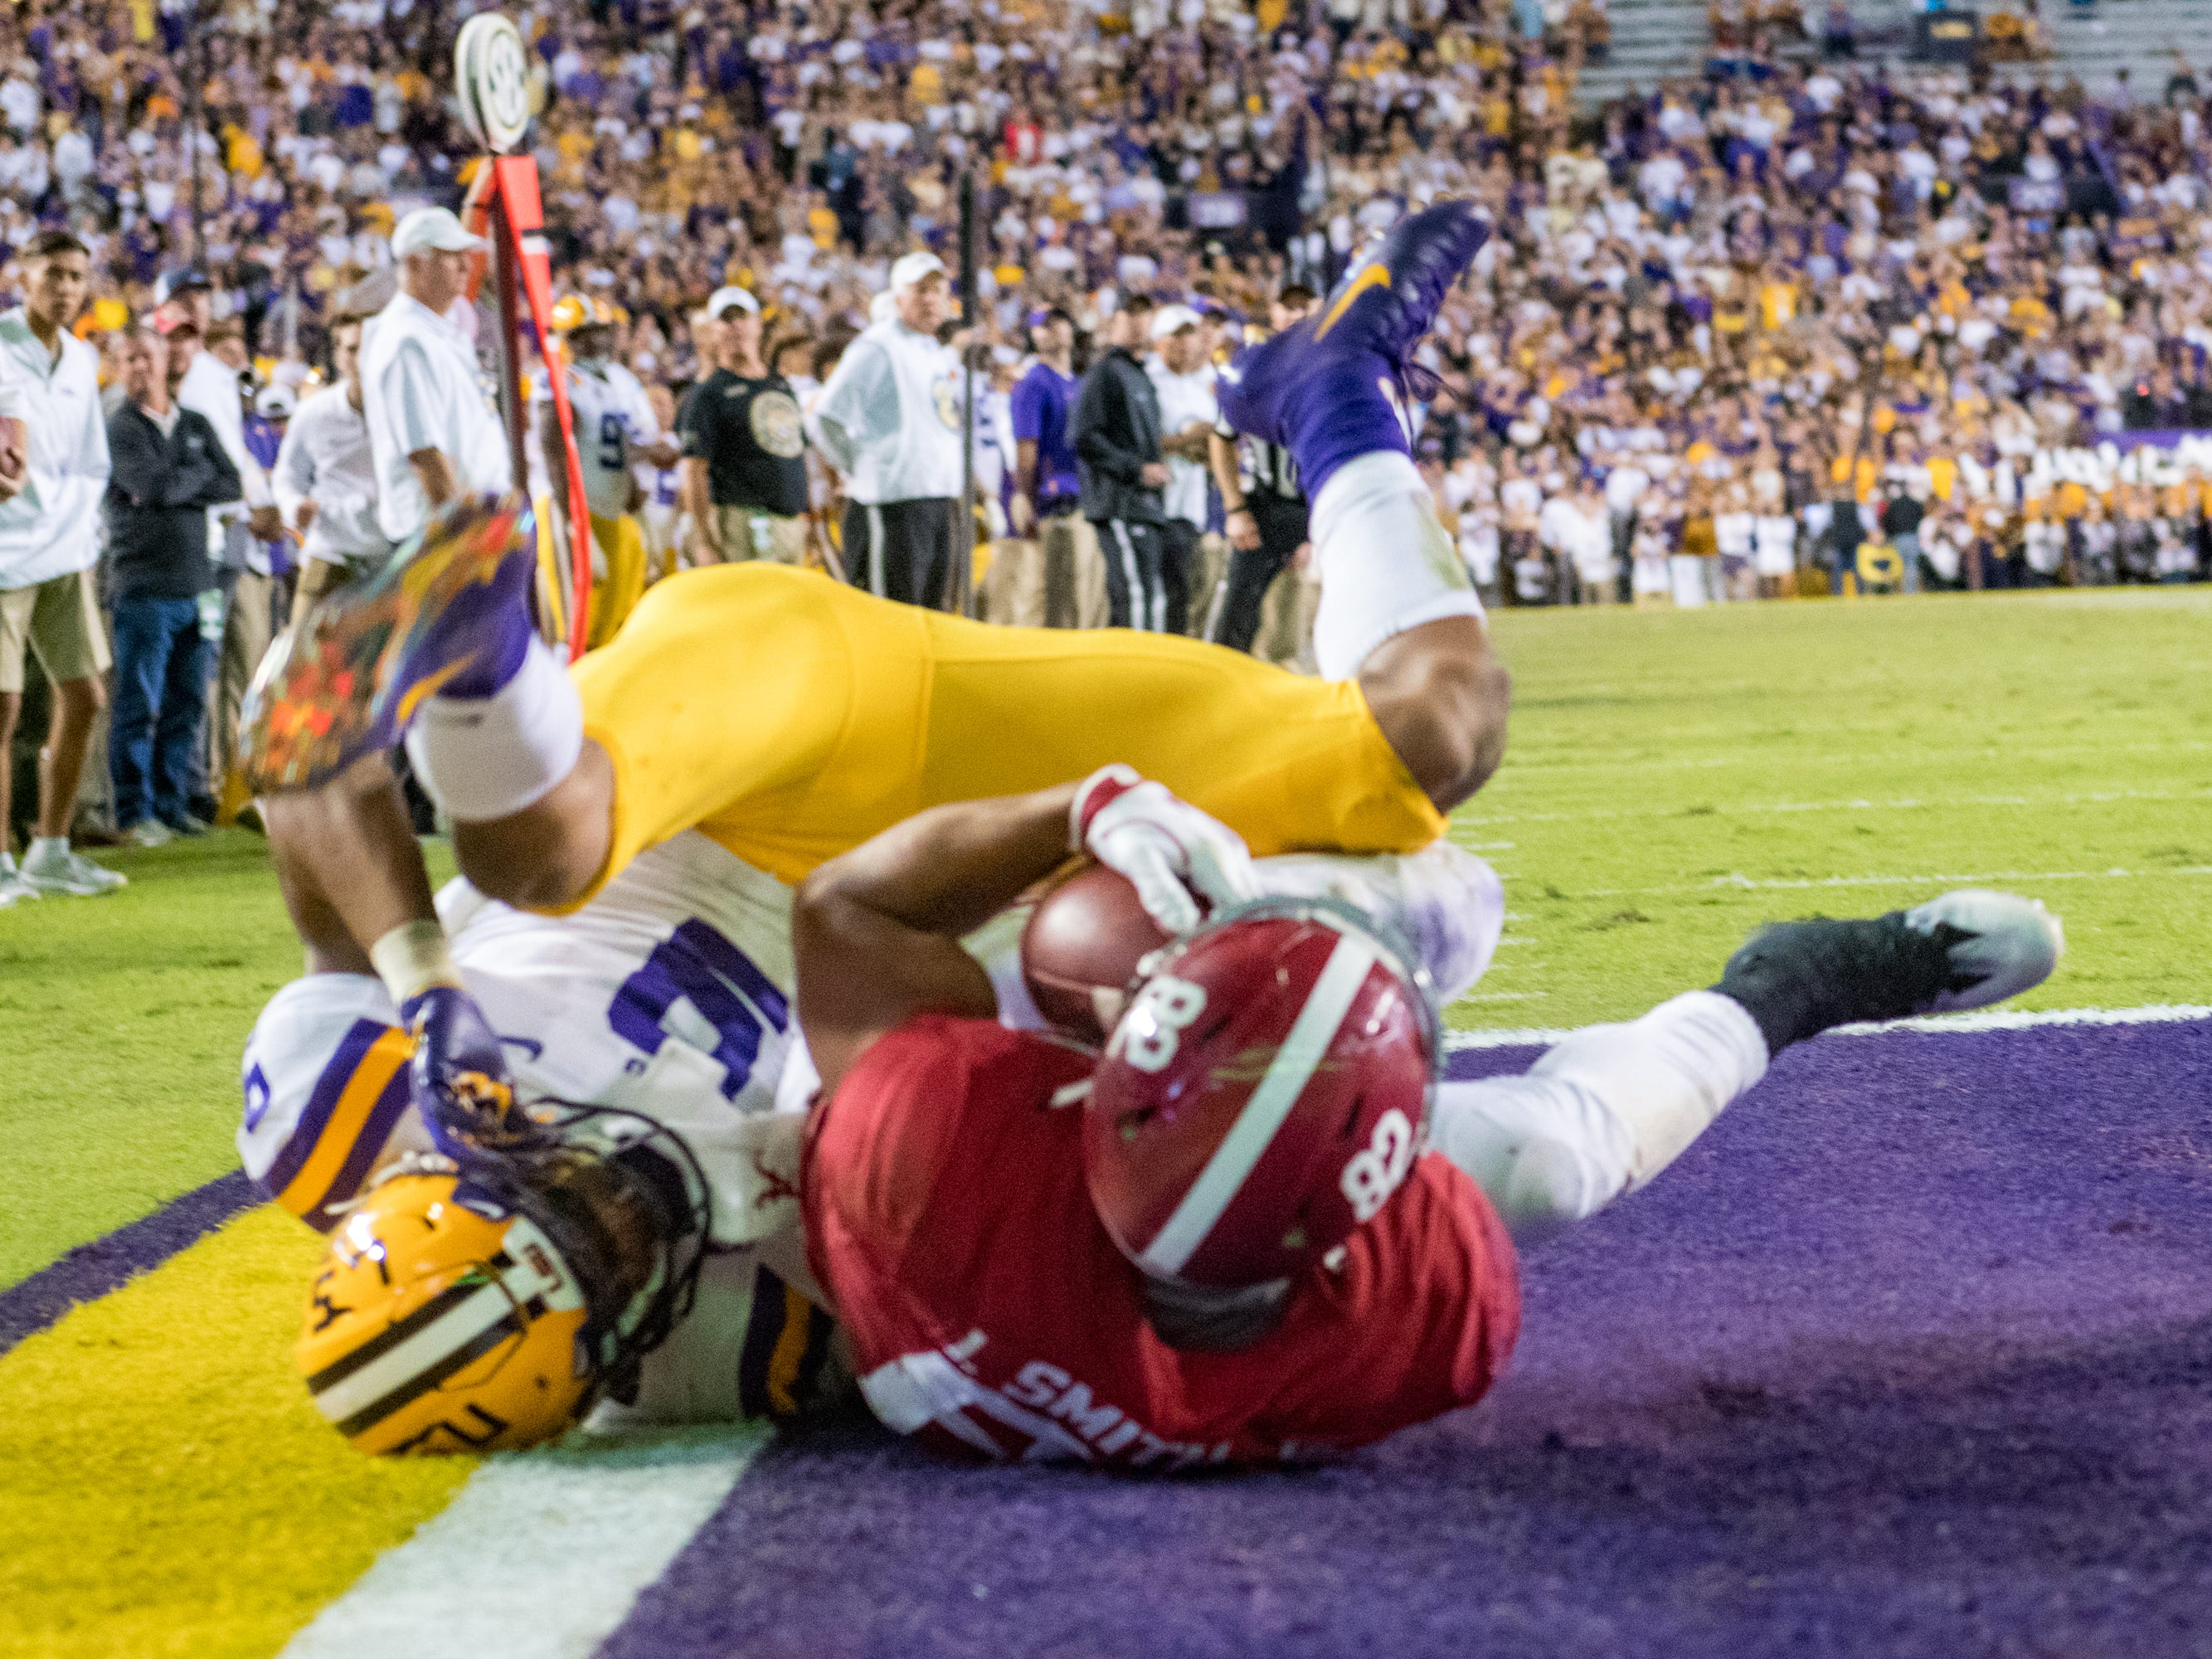 Alabamas Tight end Irv Smith makes a catch in the end zone to score as the No. 4-ranked LSU Tigers take on the No. 1  Alabama Crimson Tide in Tiger Stadium Saturday, Nov. 3, 2018.